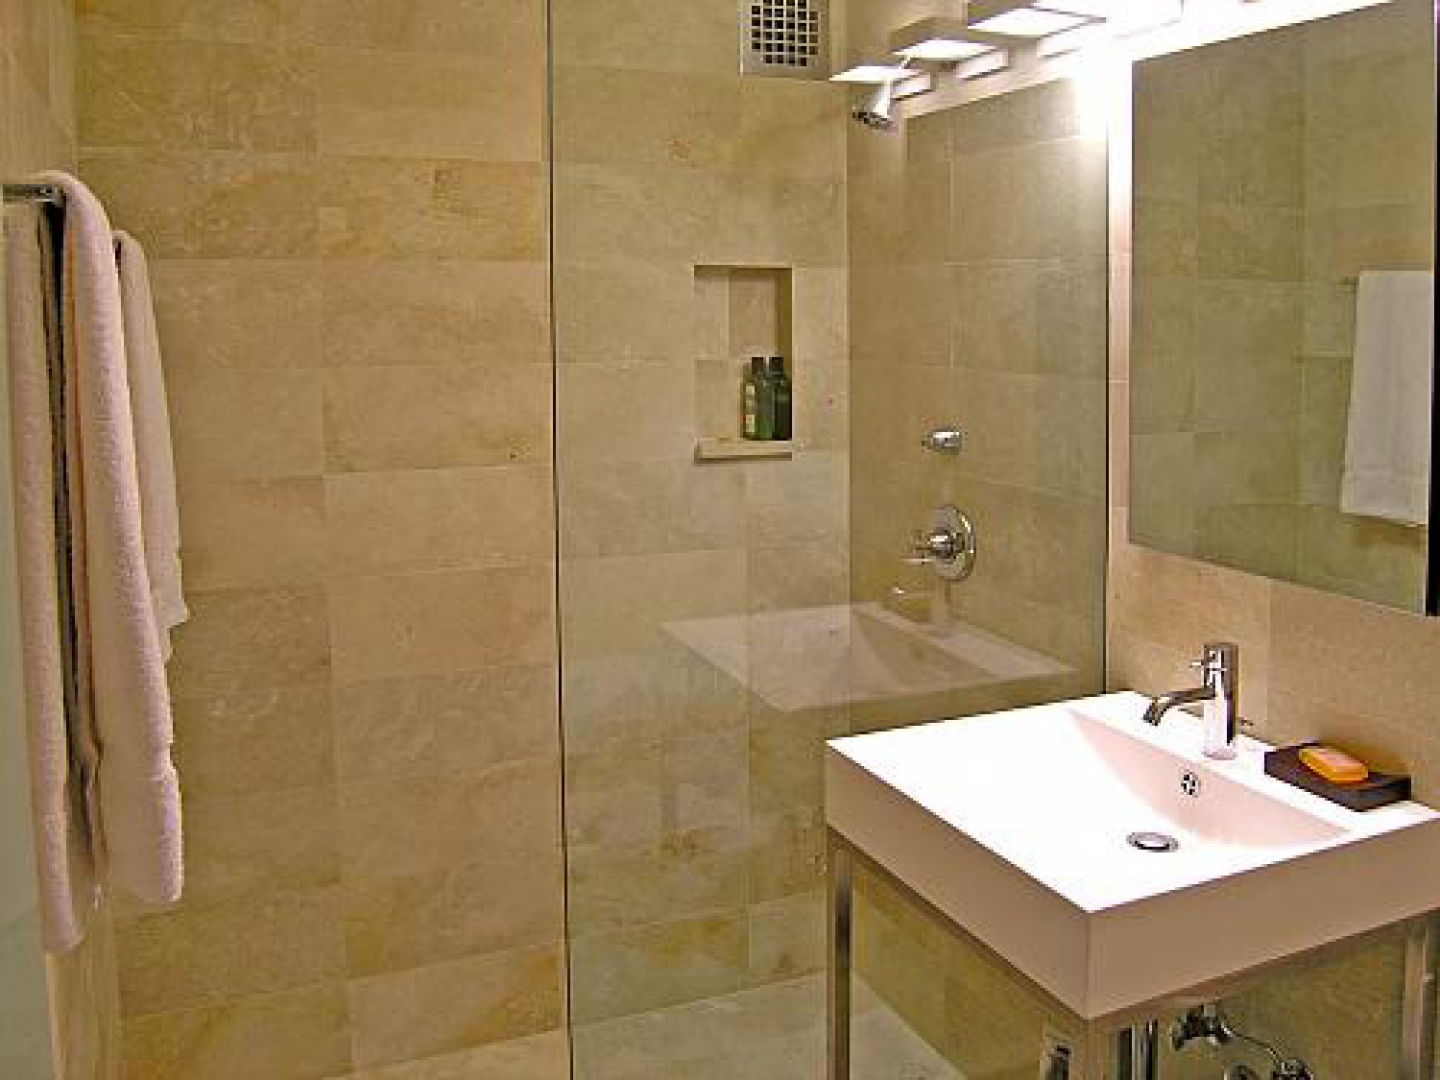 Not Using Tiles Bathroom Ideas: 30 Nice Pictures And Ideas Bath And Tile Innovations